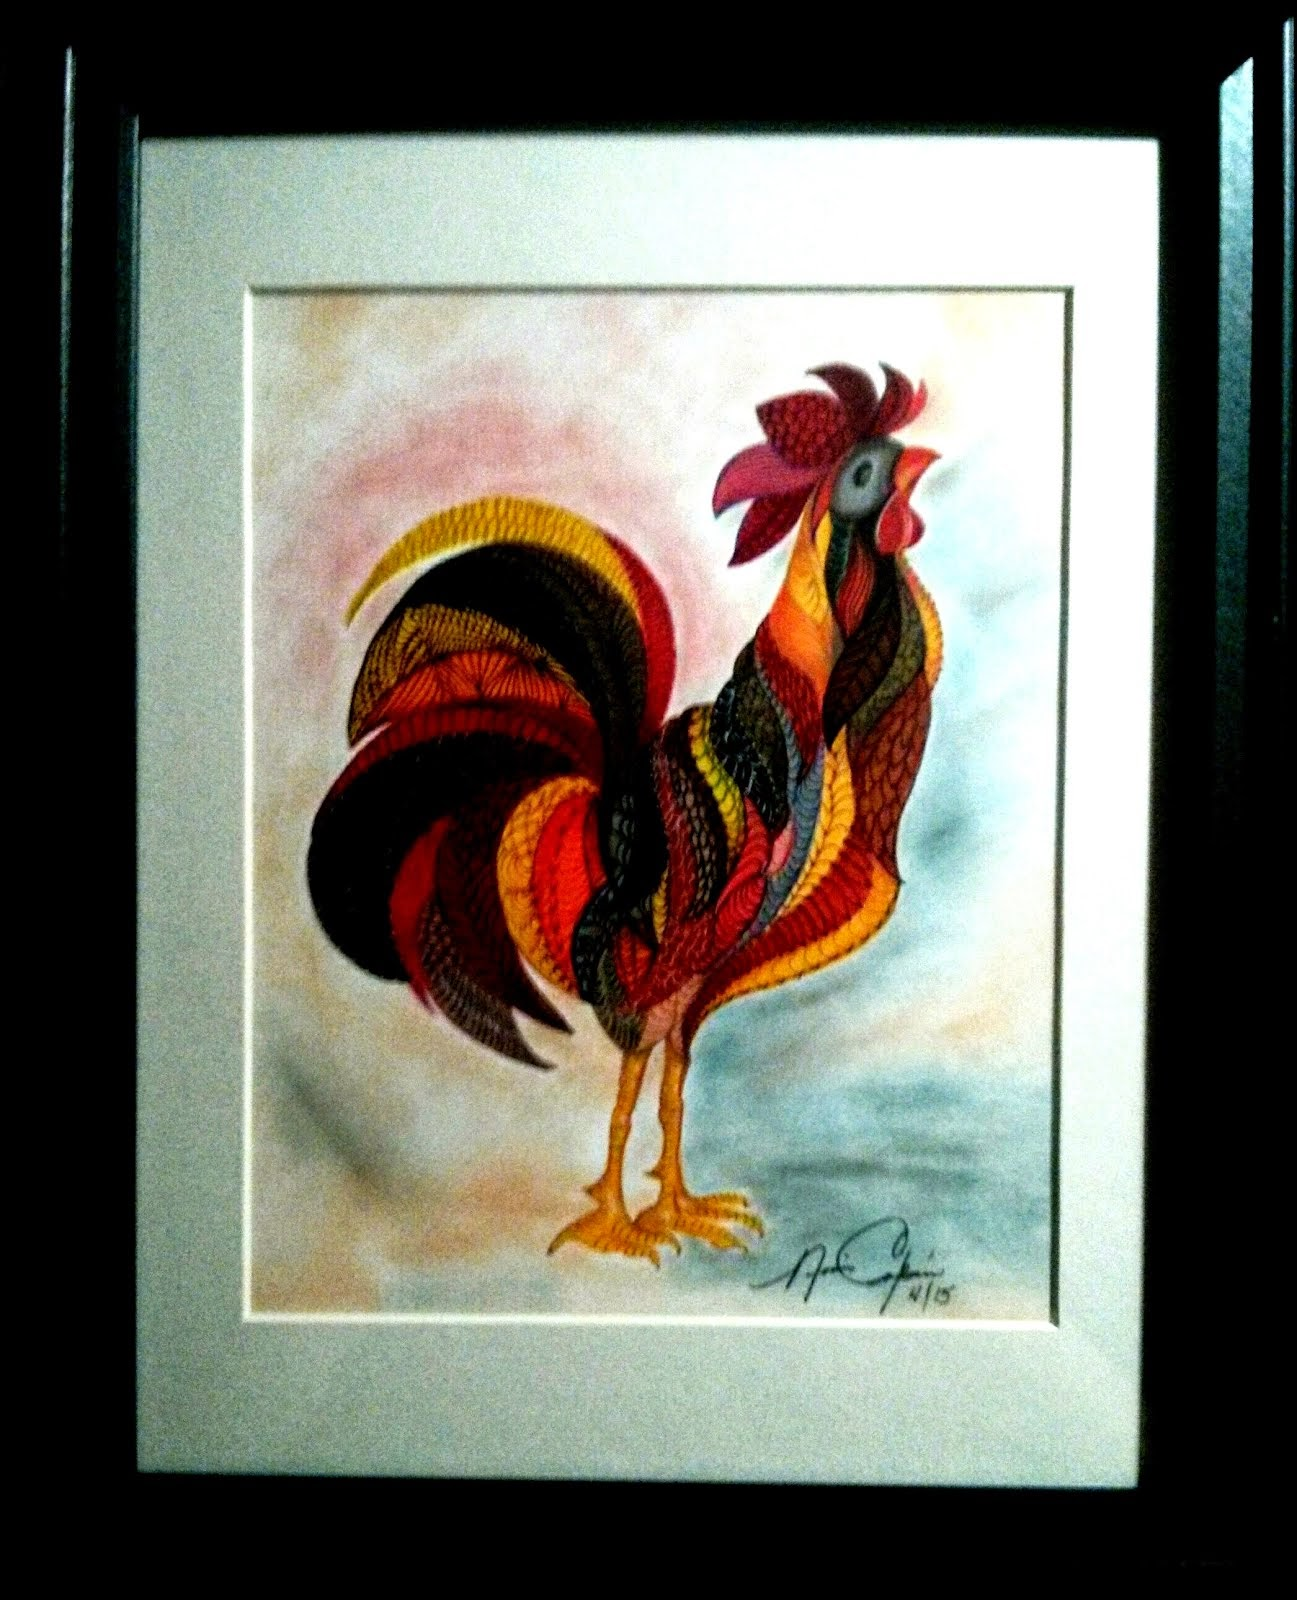 "'El Gallo"" ®"